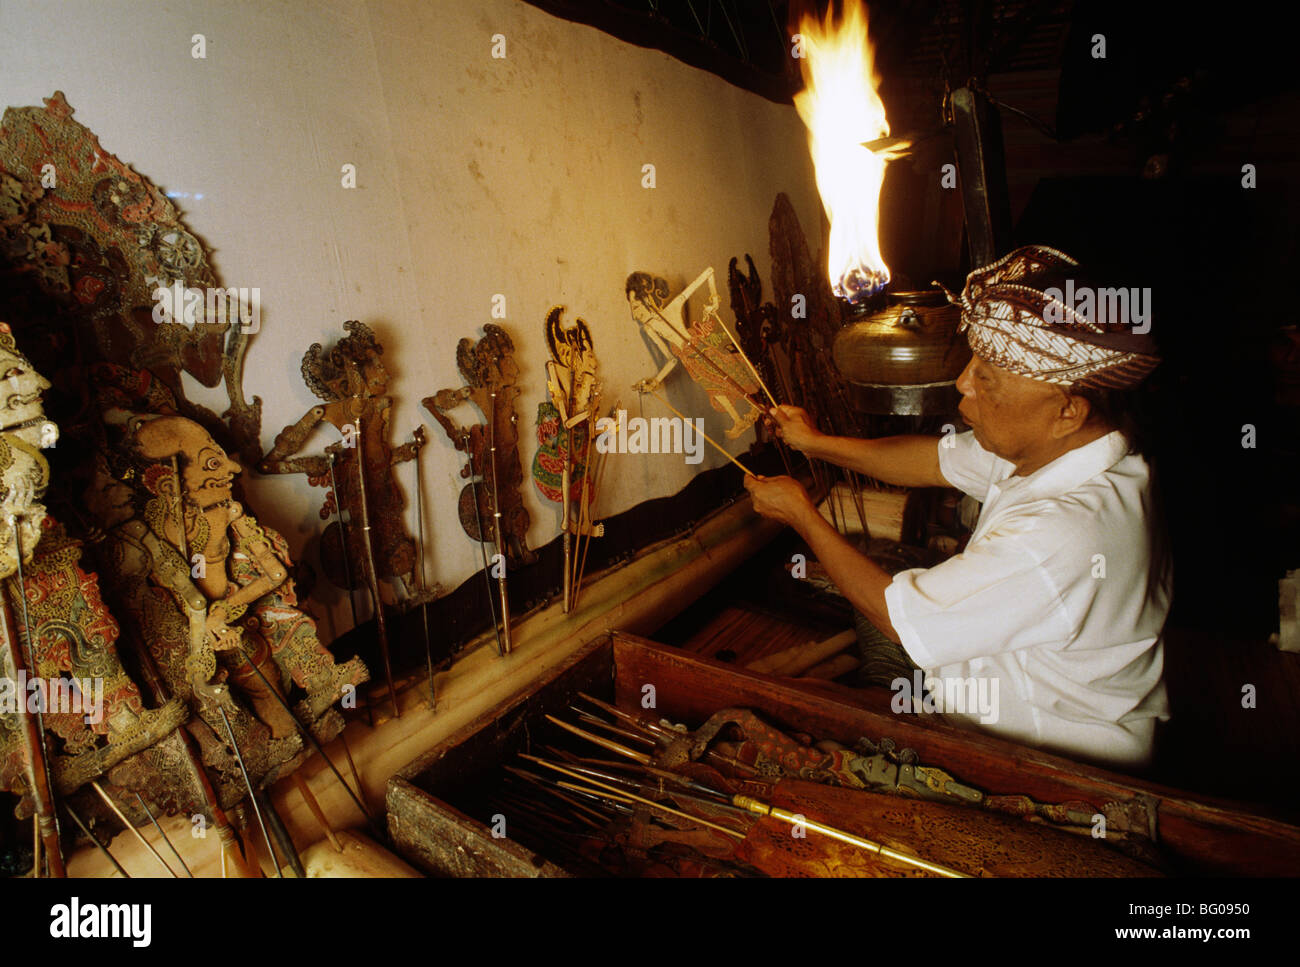 Dalang or puppeteer at Wayang Kulit (Shadow Puppet Play) in Bali, Indonesia, Southeast Asia - Stock Image